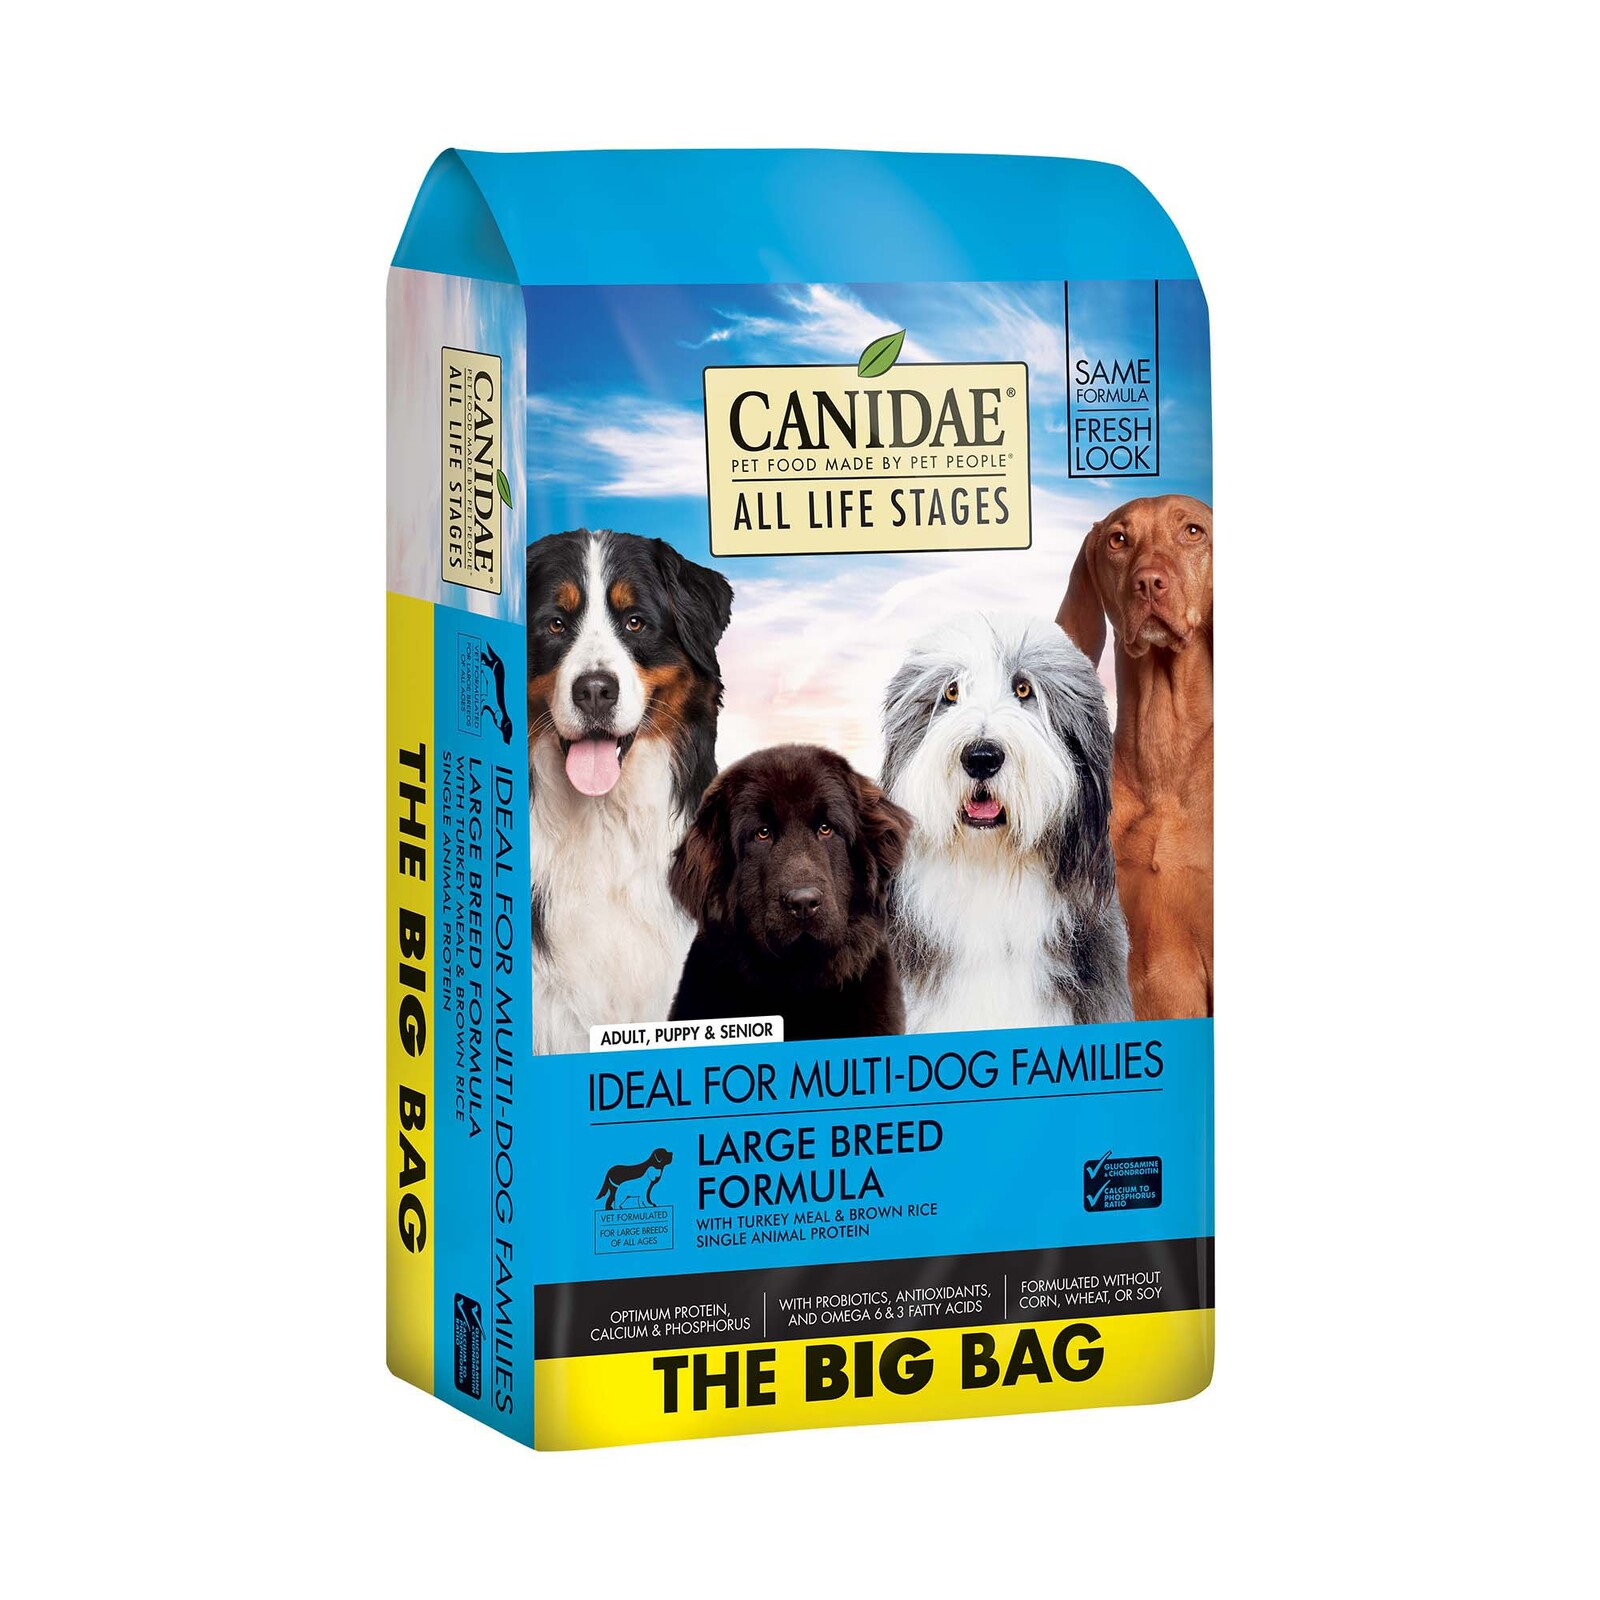 CANIDAE All Life Stages Large Breed  Formula with Turkey Meal & Brown Rice Dry Dog Food 20kg image 5